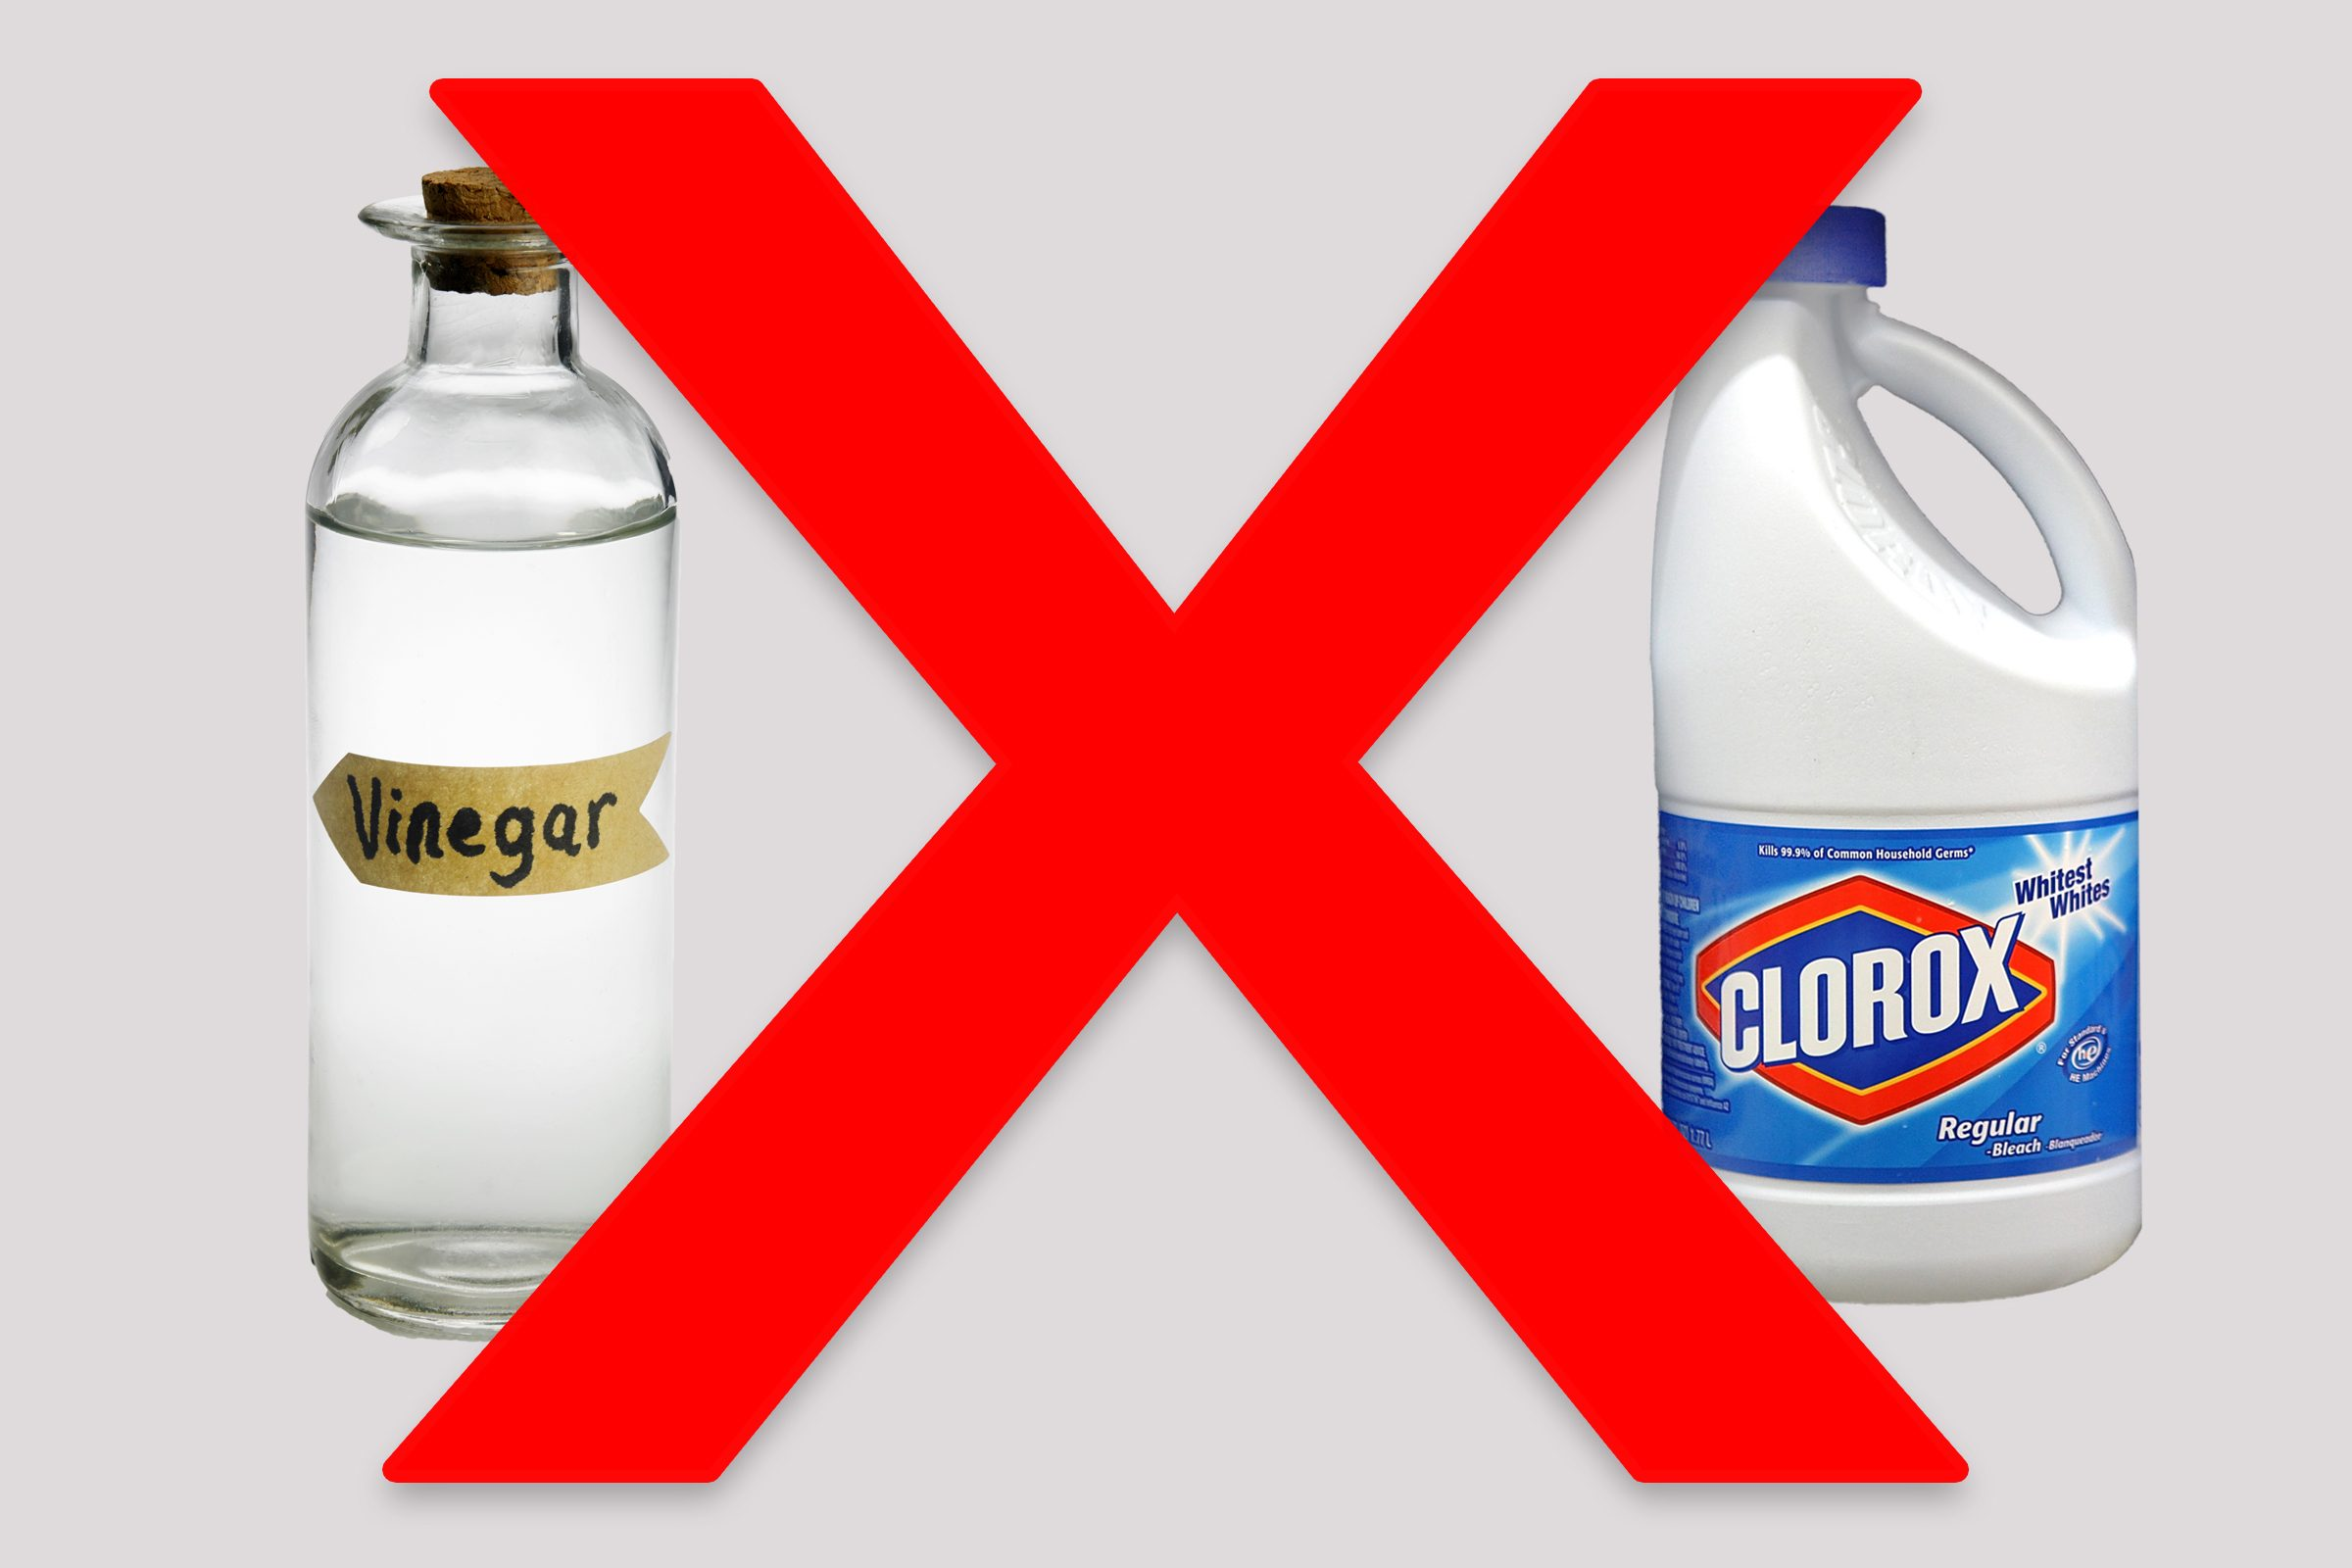 vinegar bleach cleaning products don't mix